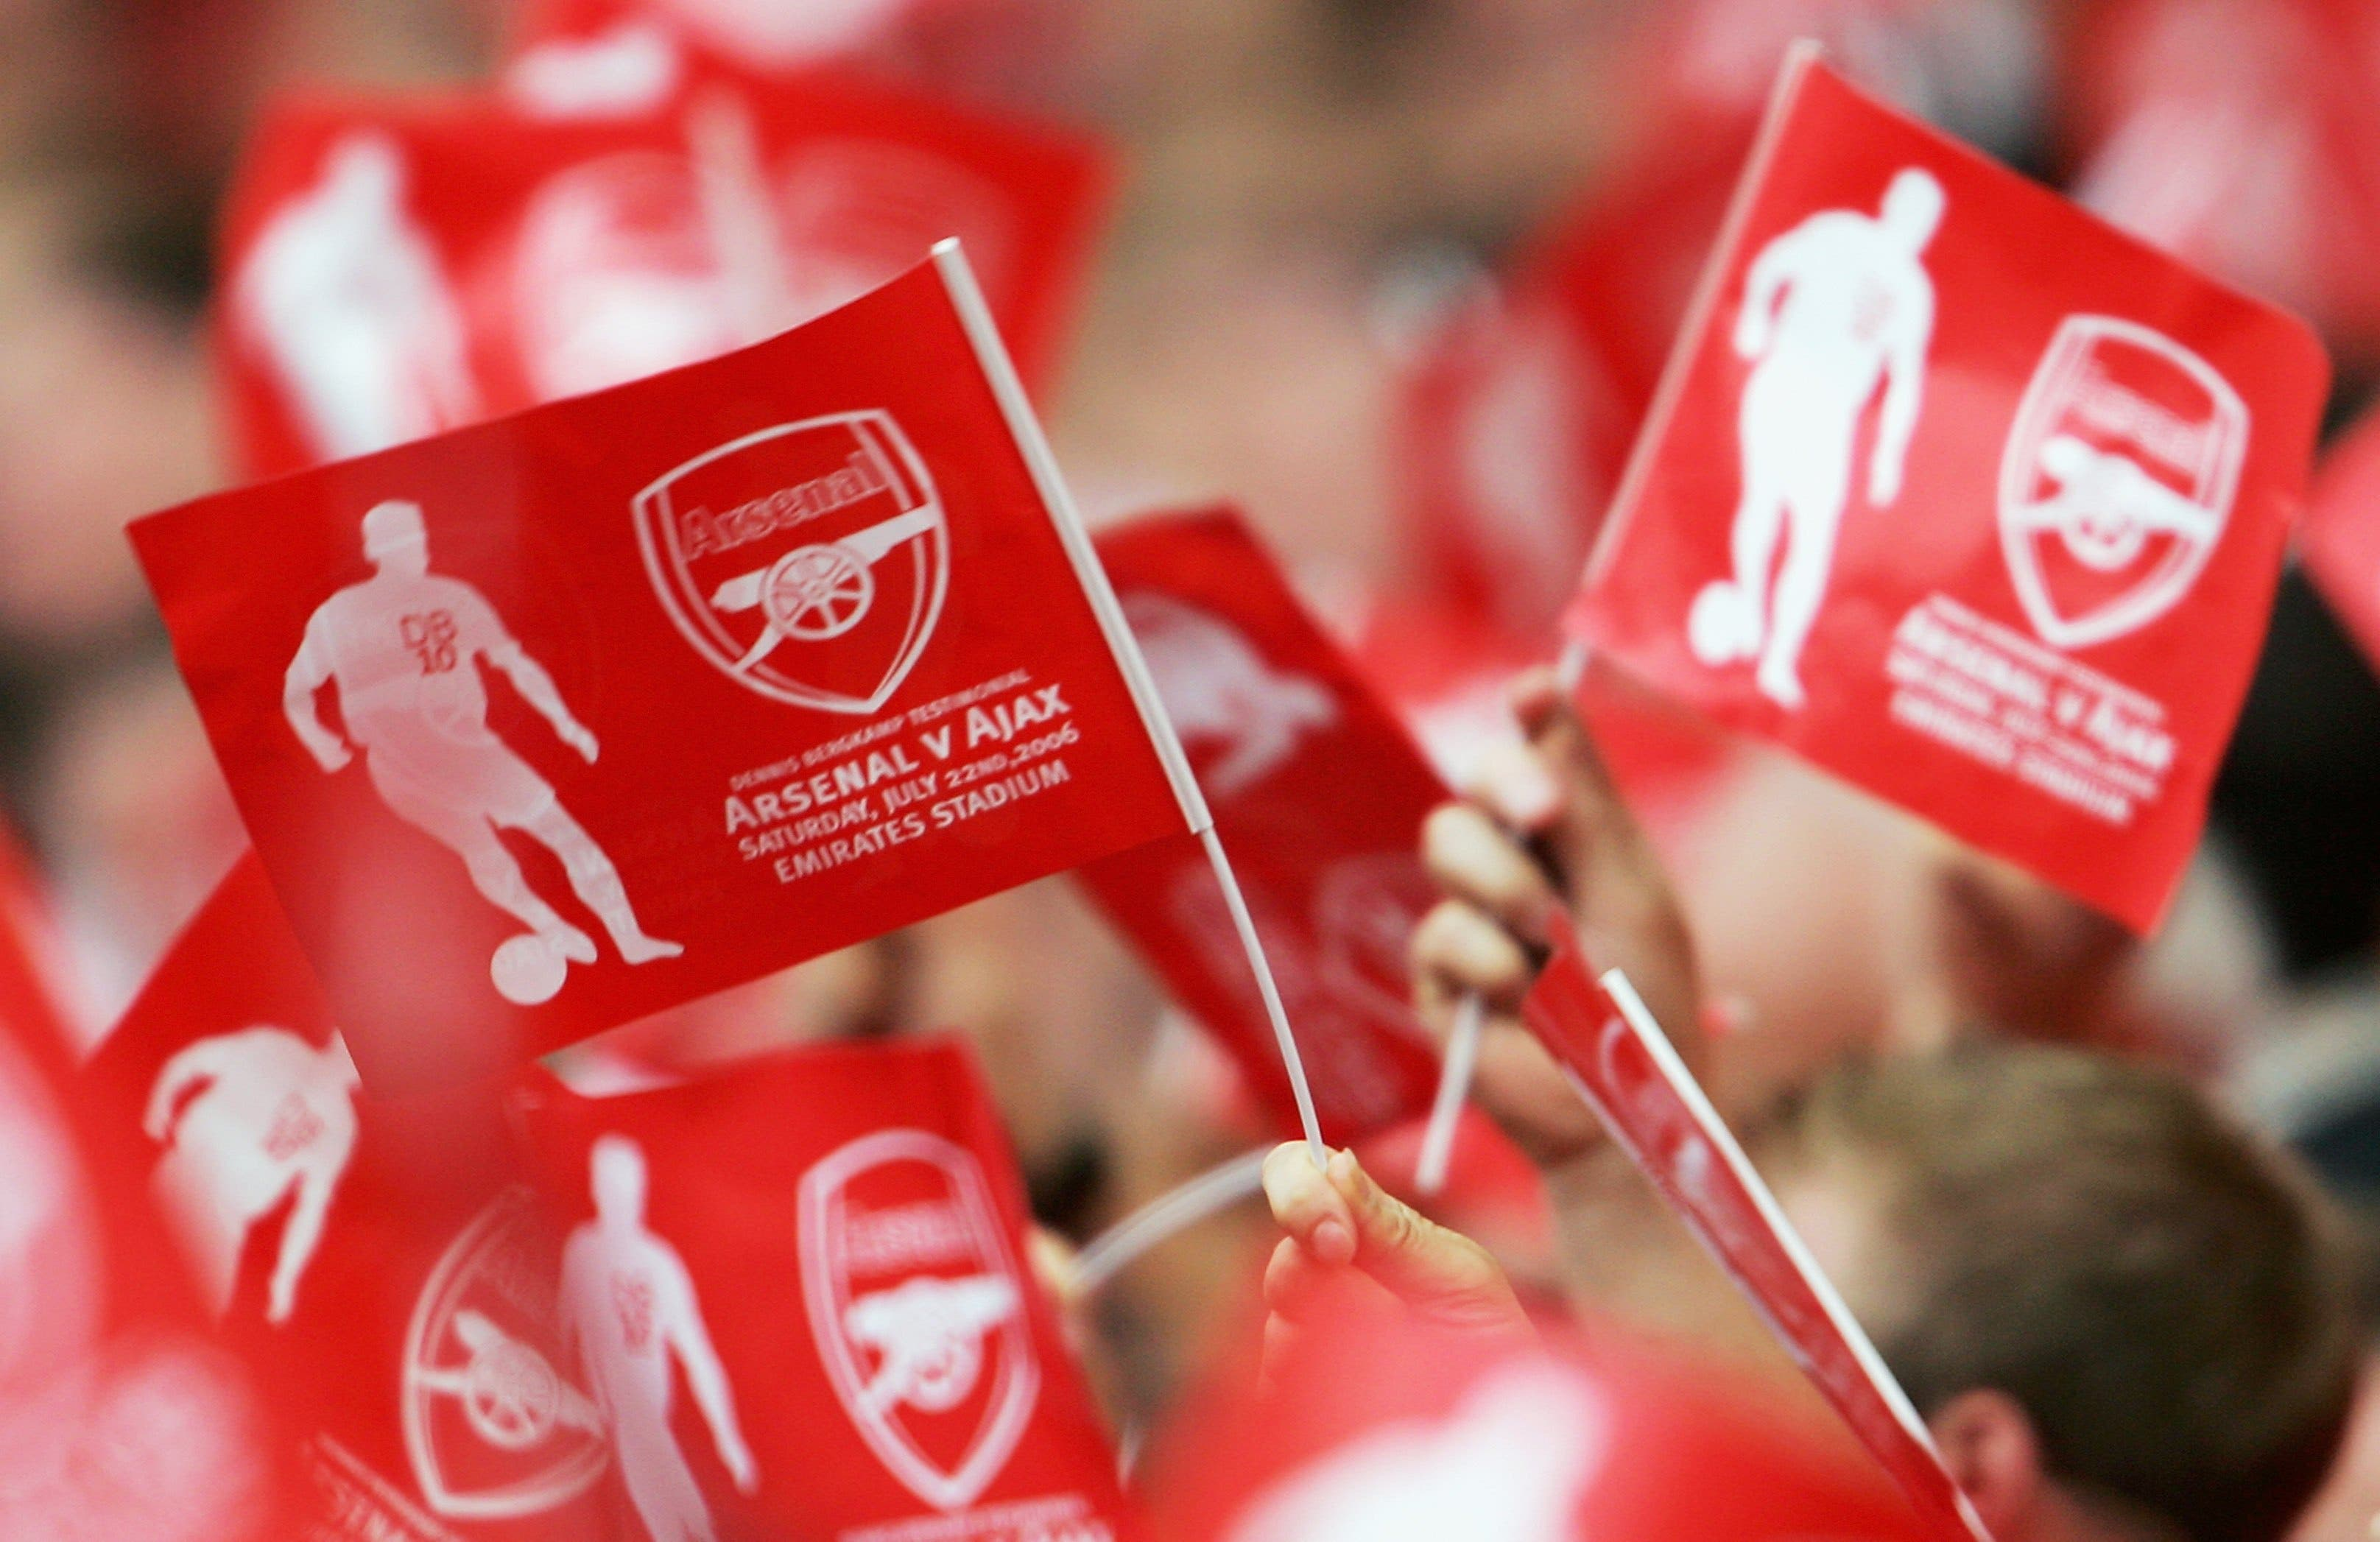 Bin Laden was an Arsenal fan, but he surely never attended any of their matches, or did he?!